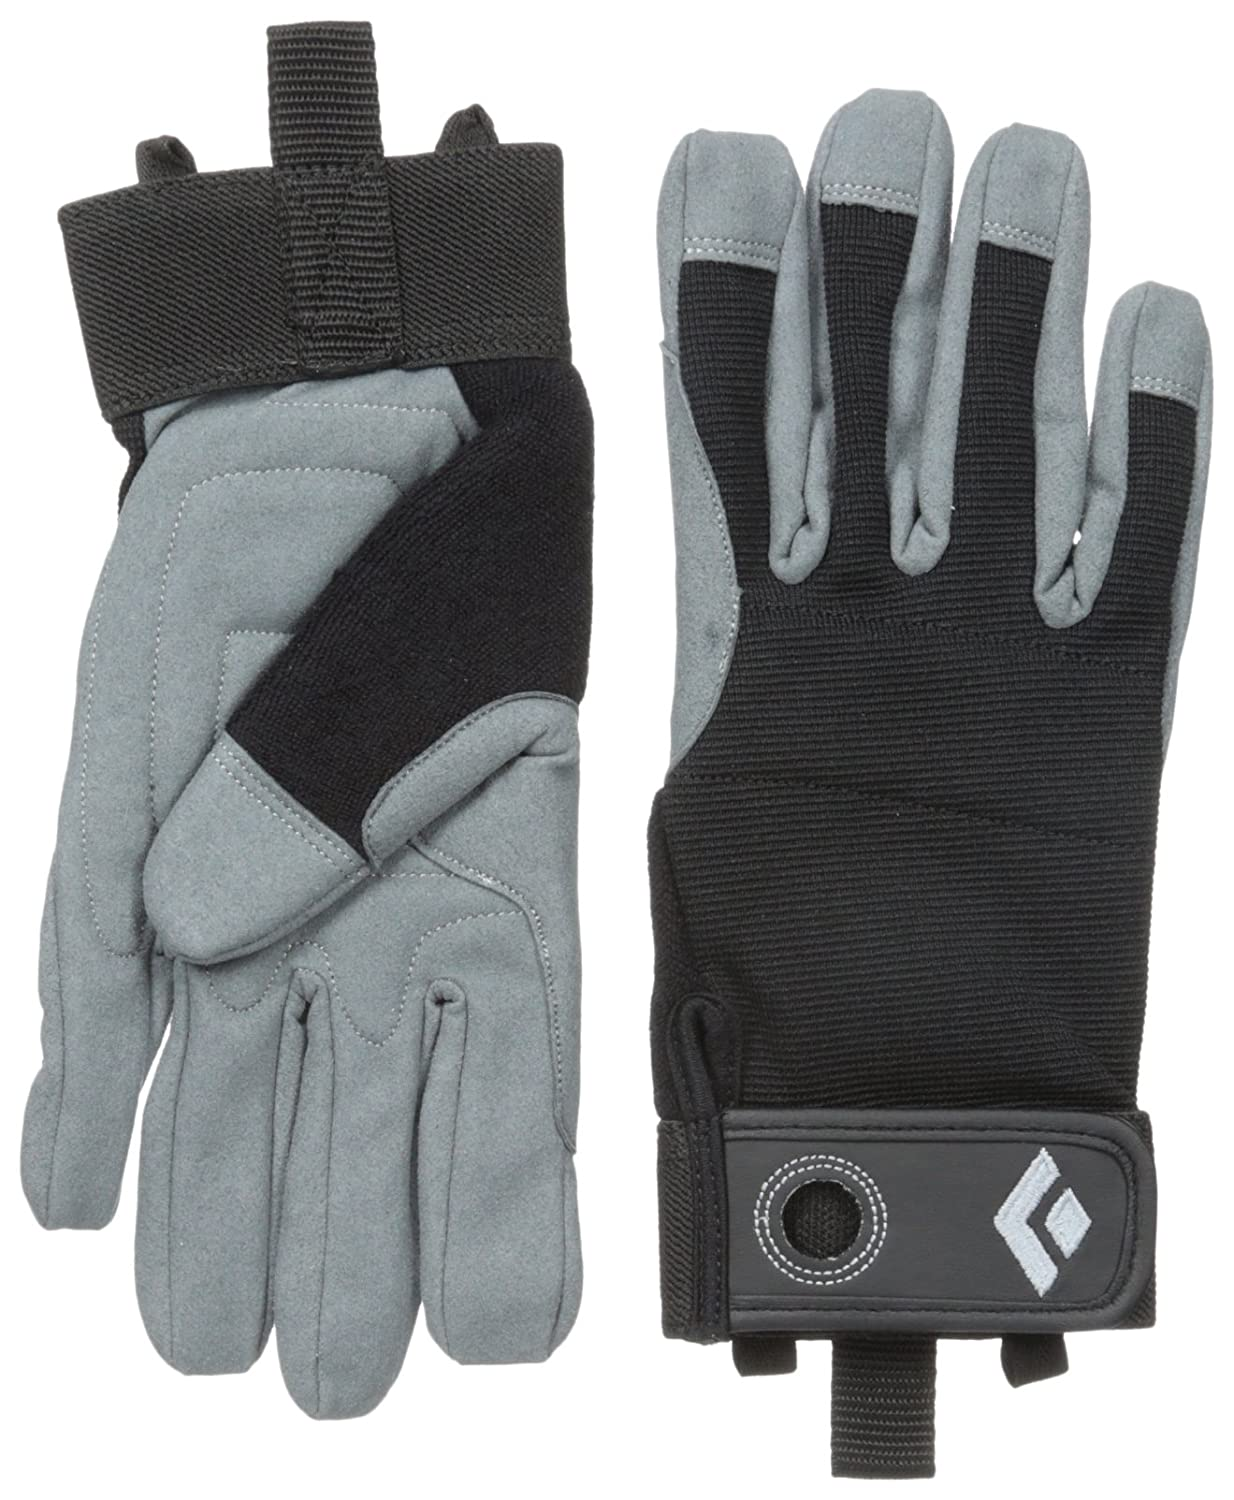 Black gardening gloves - Black Gardening Gloves 55